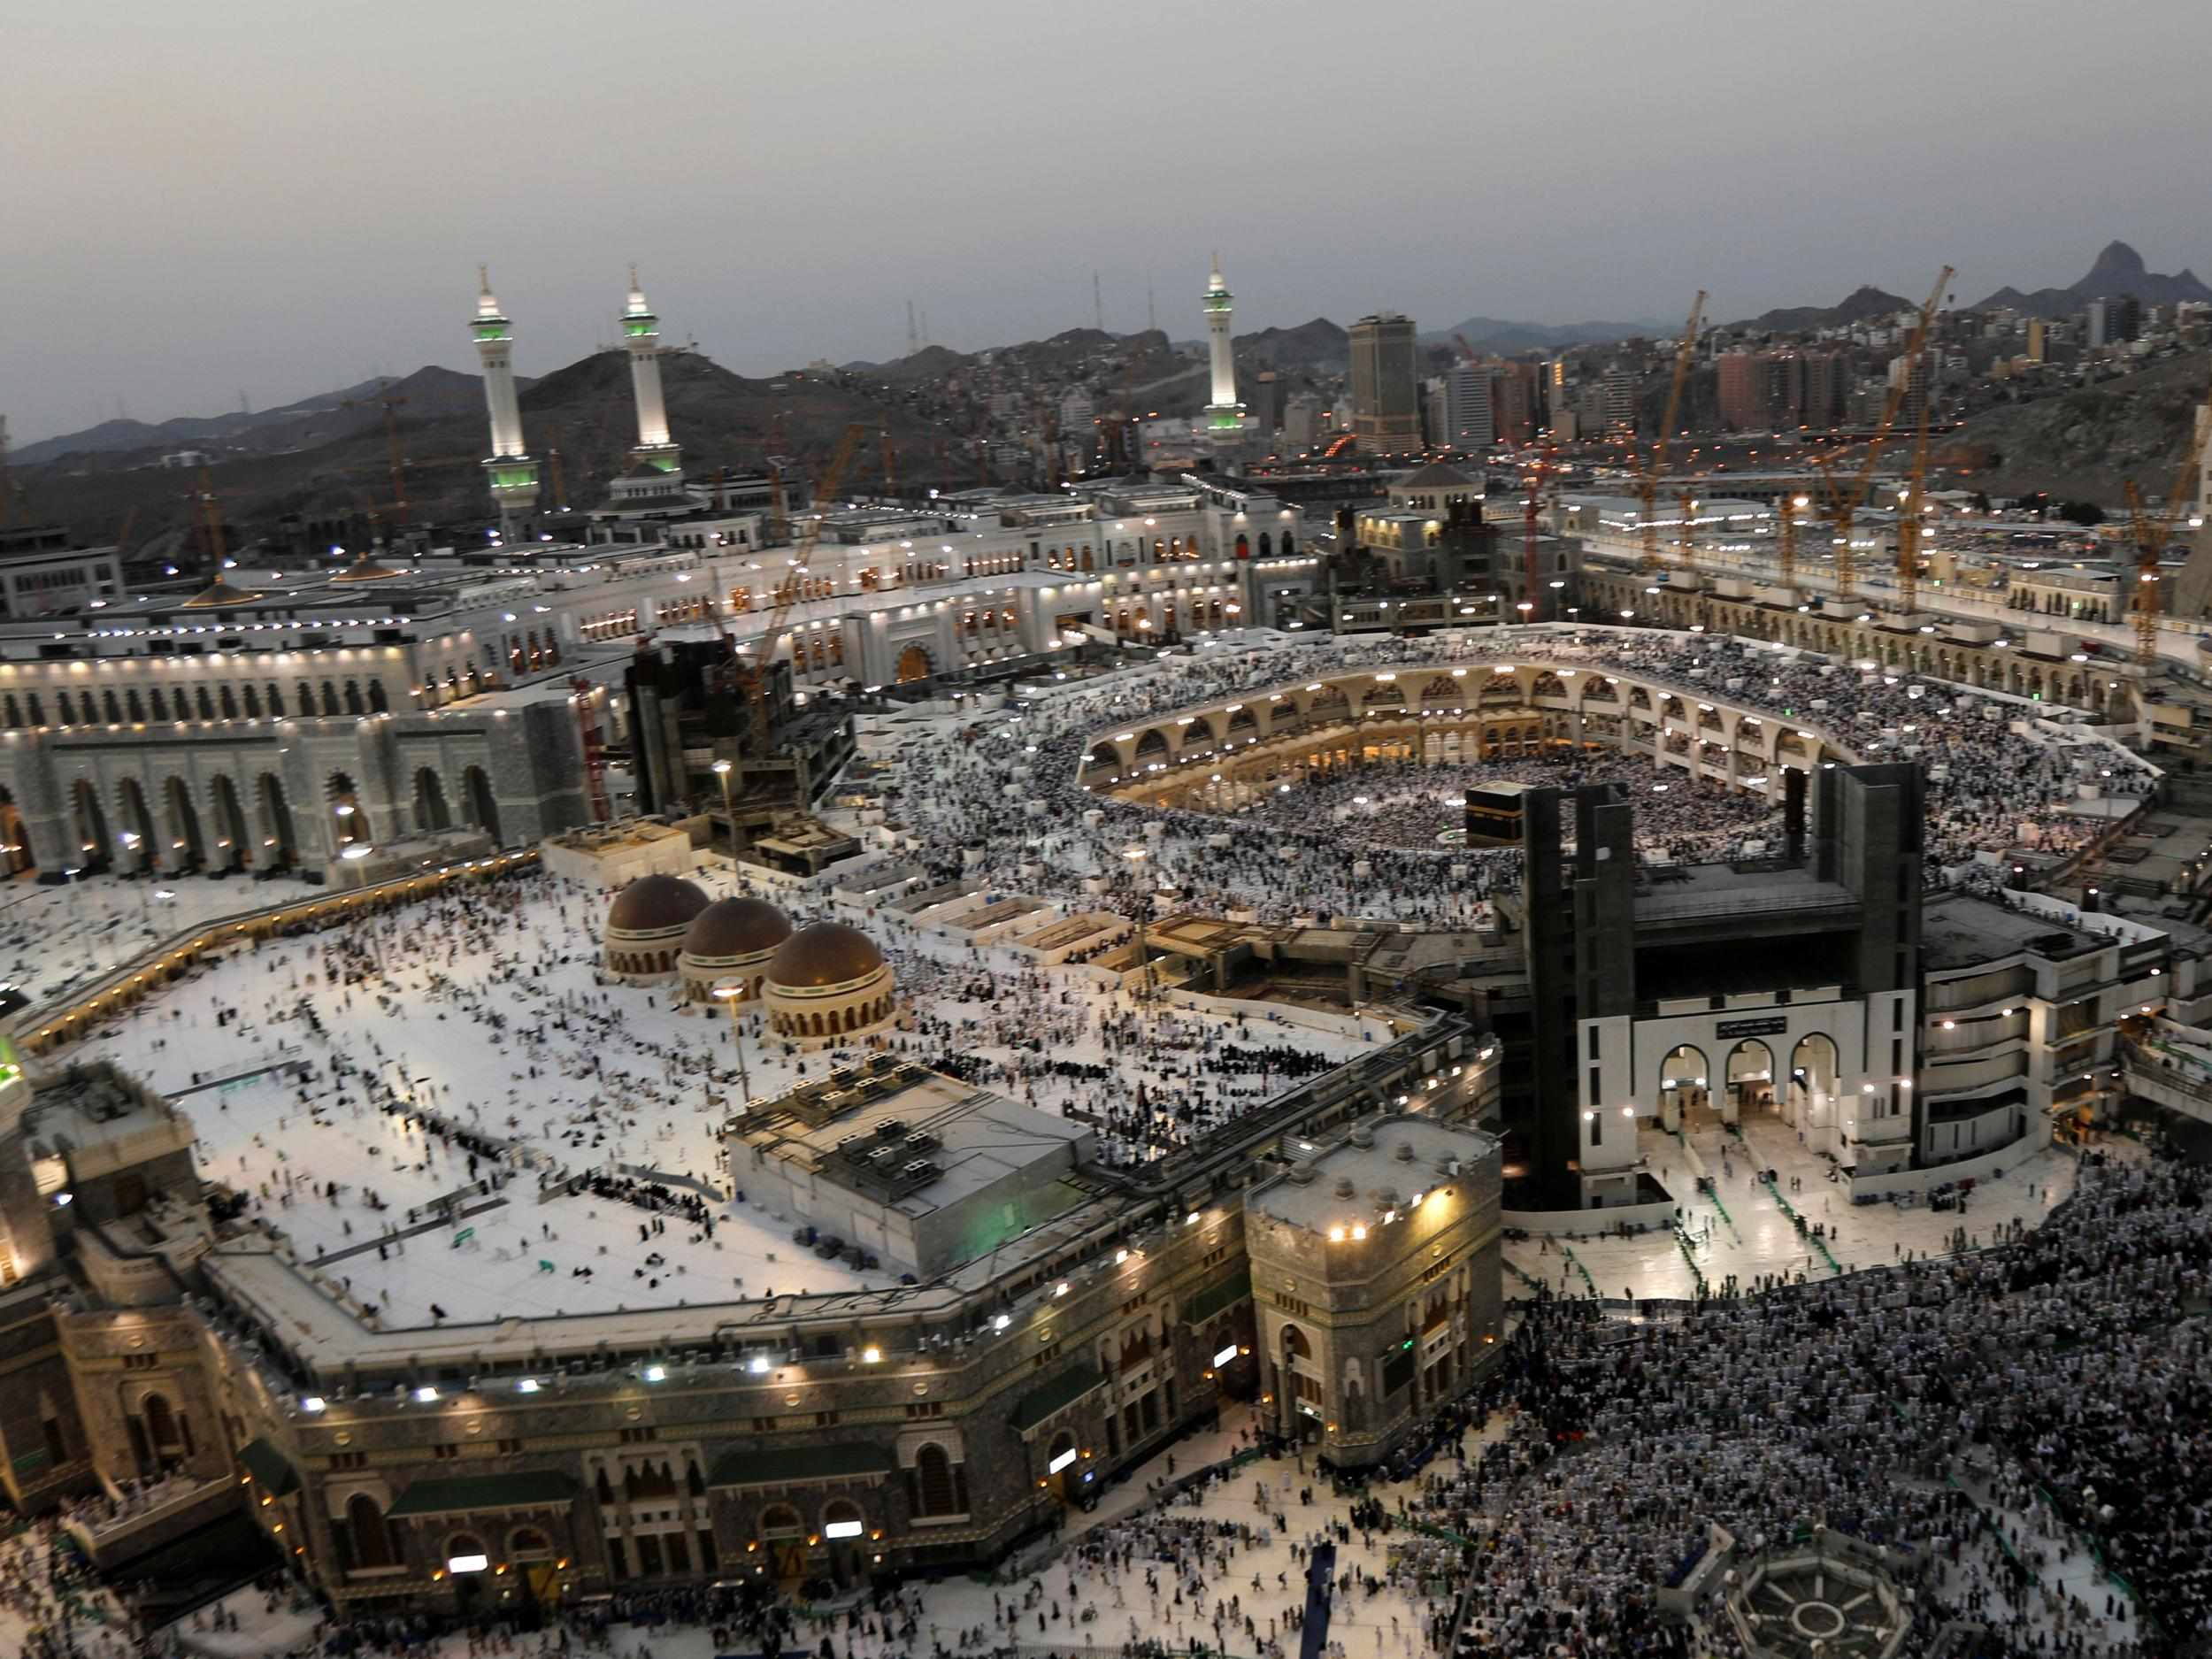 Mecca - latest news, breaking stories and comment - The Independent